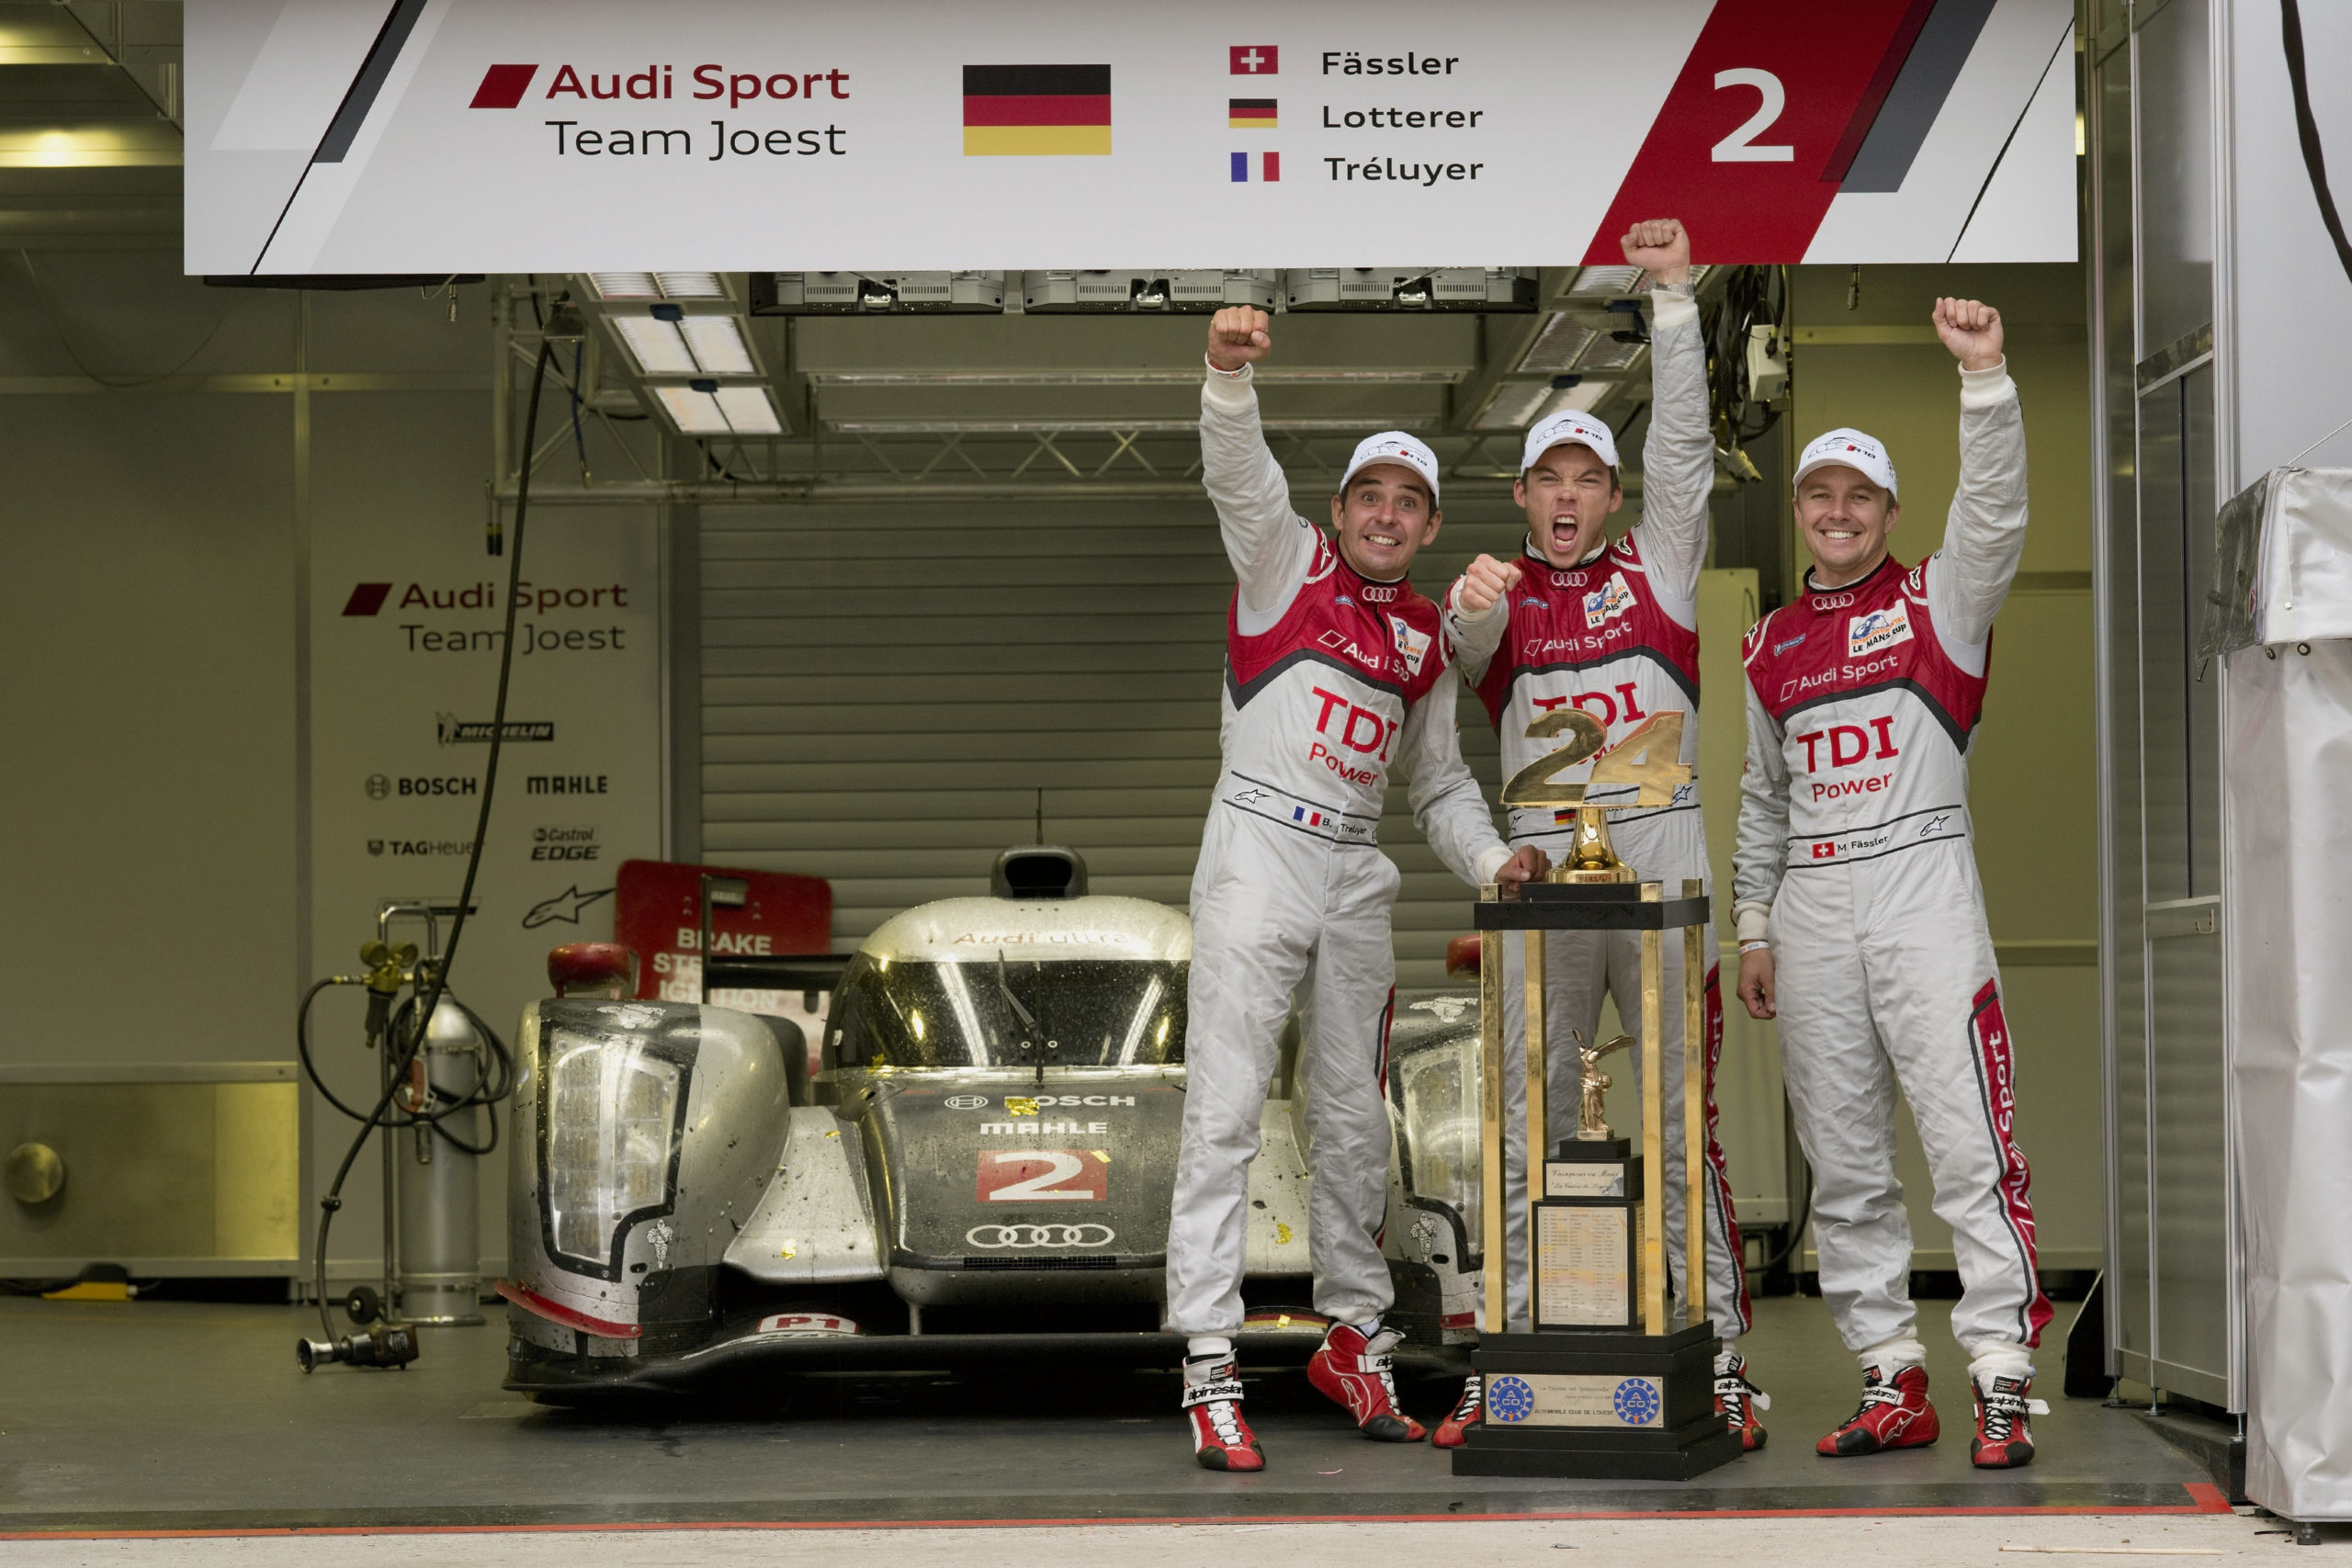 In pictures: Audi's legendary Le Mans record - Motorsport Week